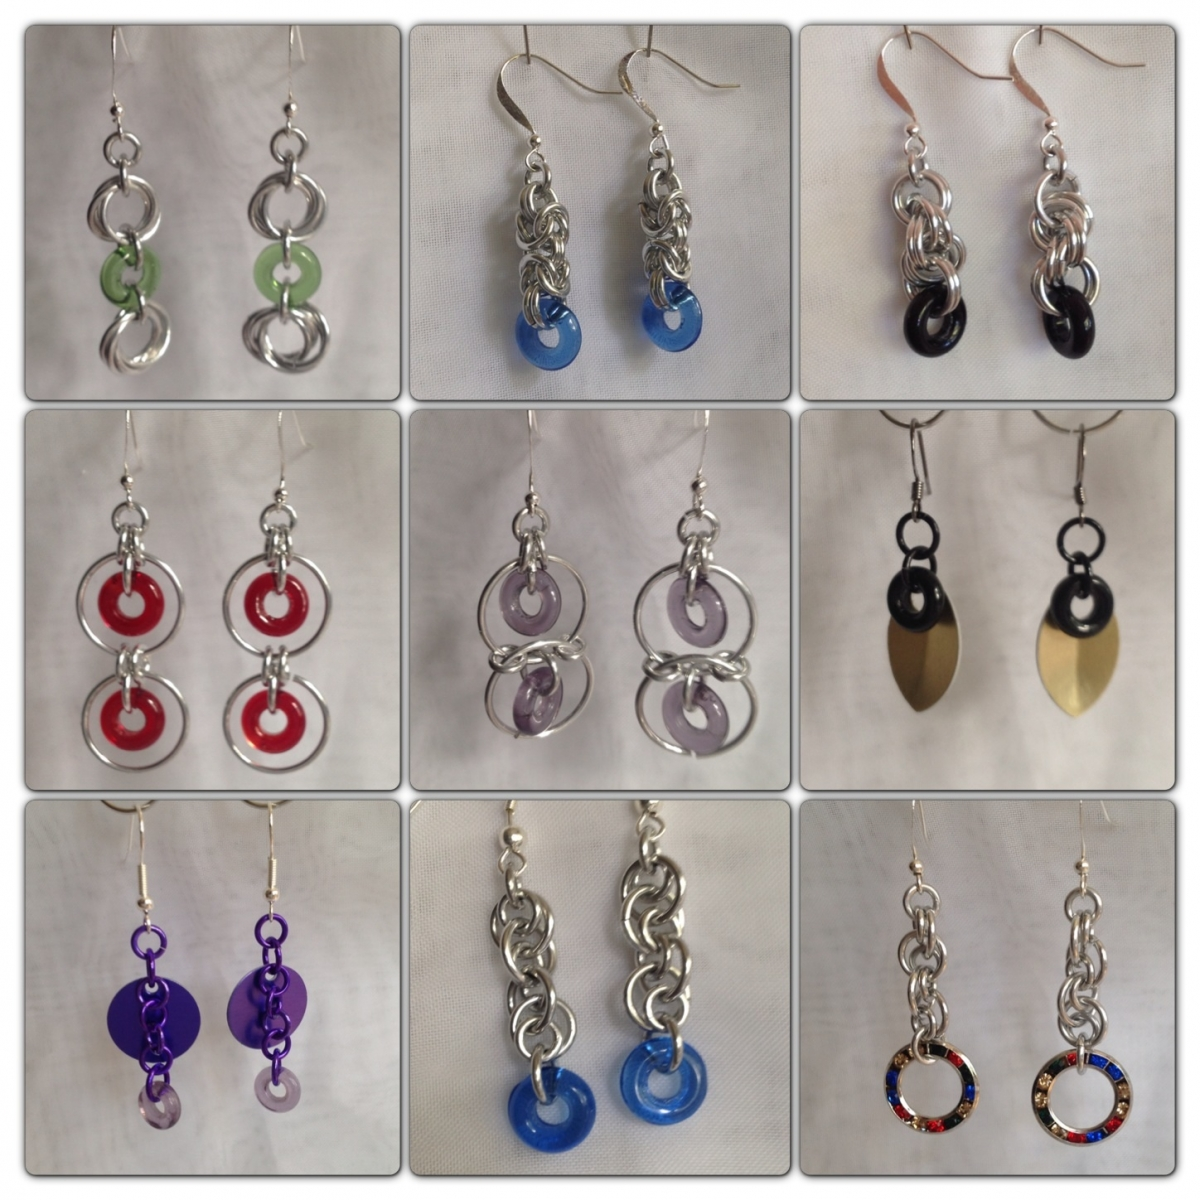 Earrings using glass rings